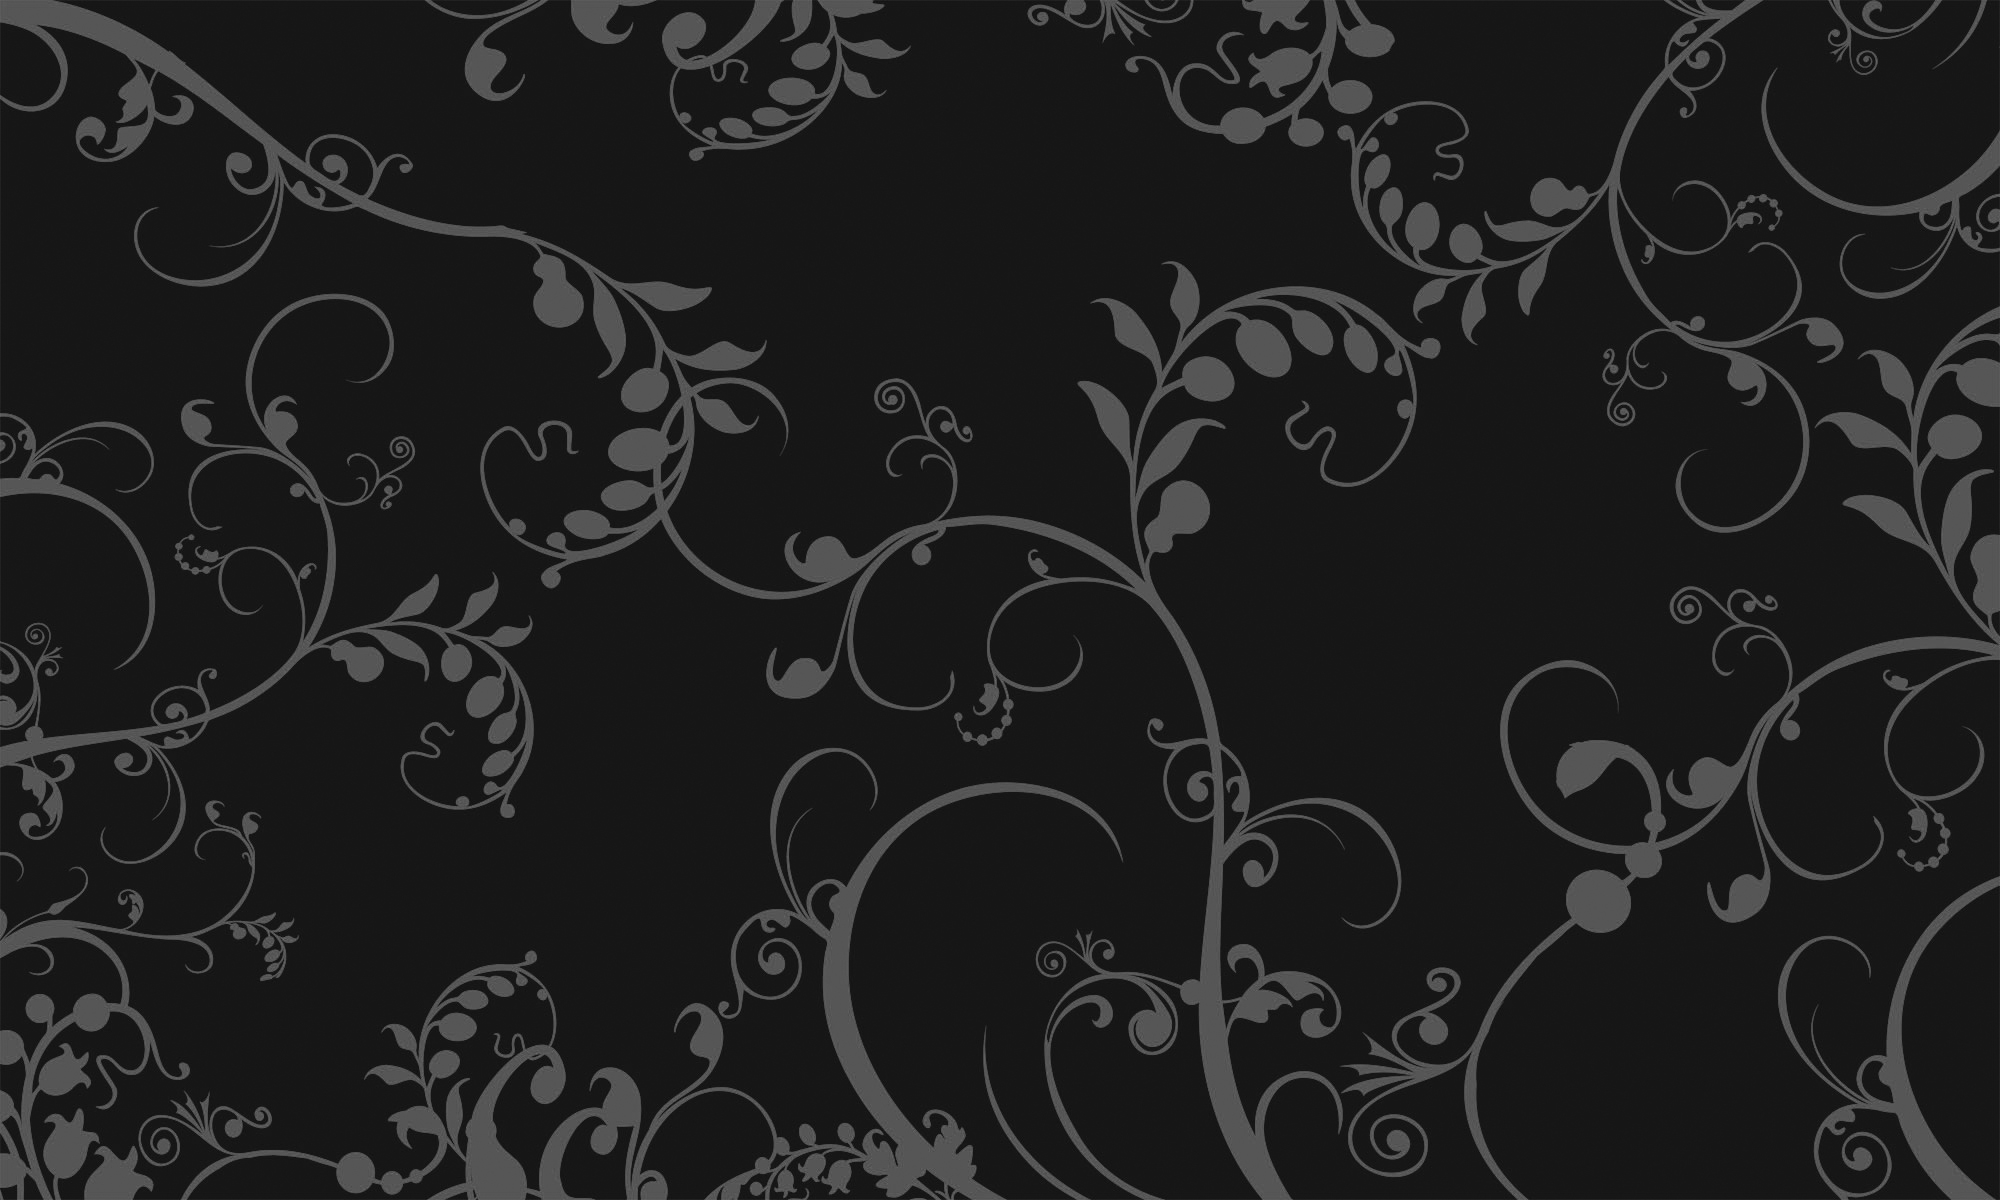 Black Hair Salon Background New bliss website background 2000x1200